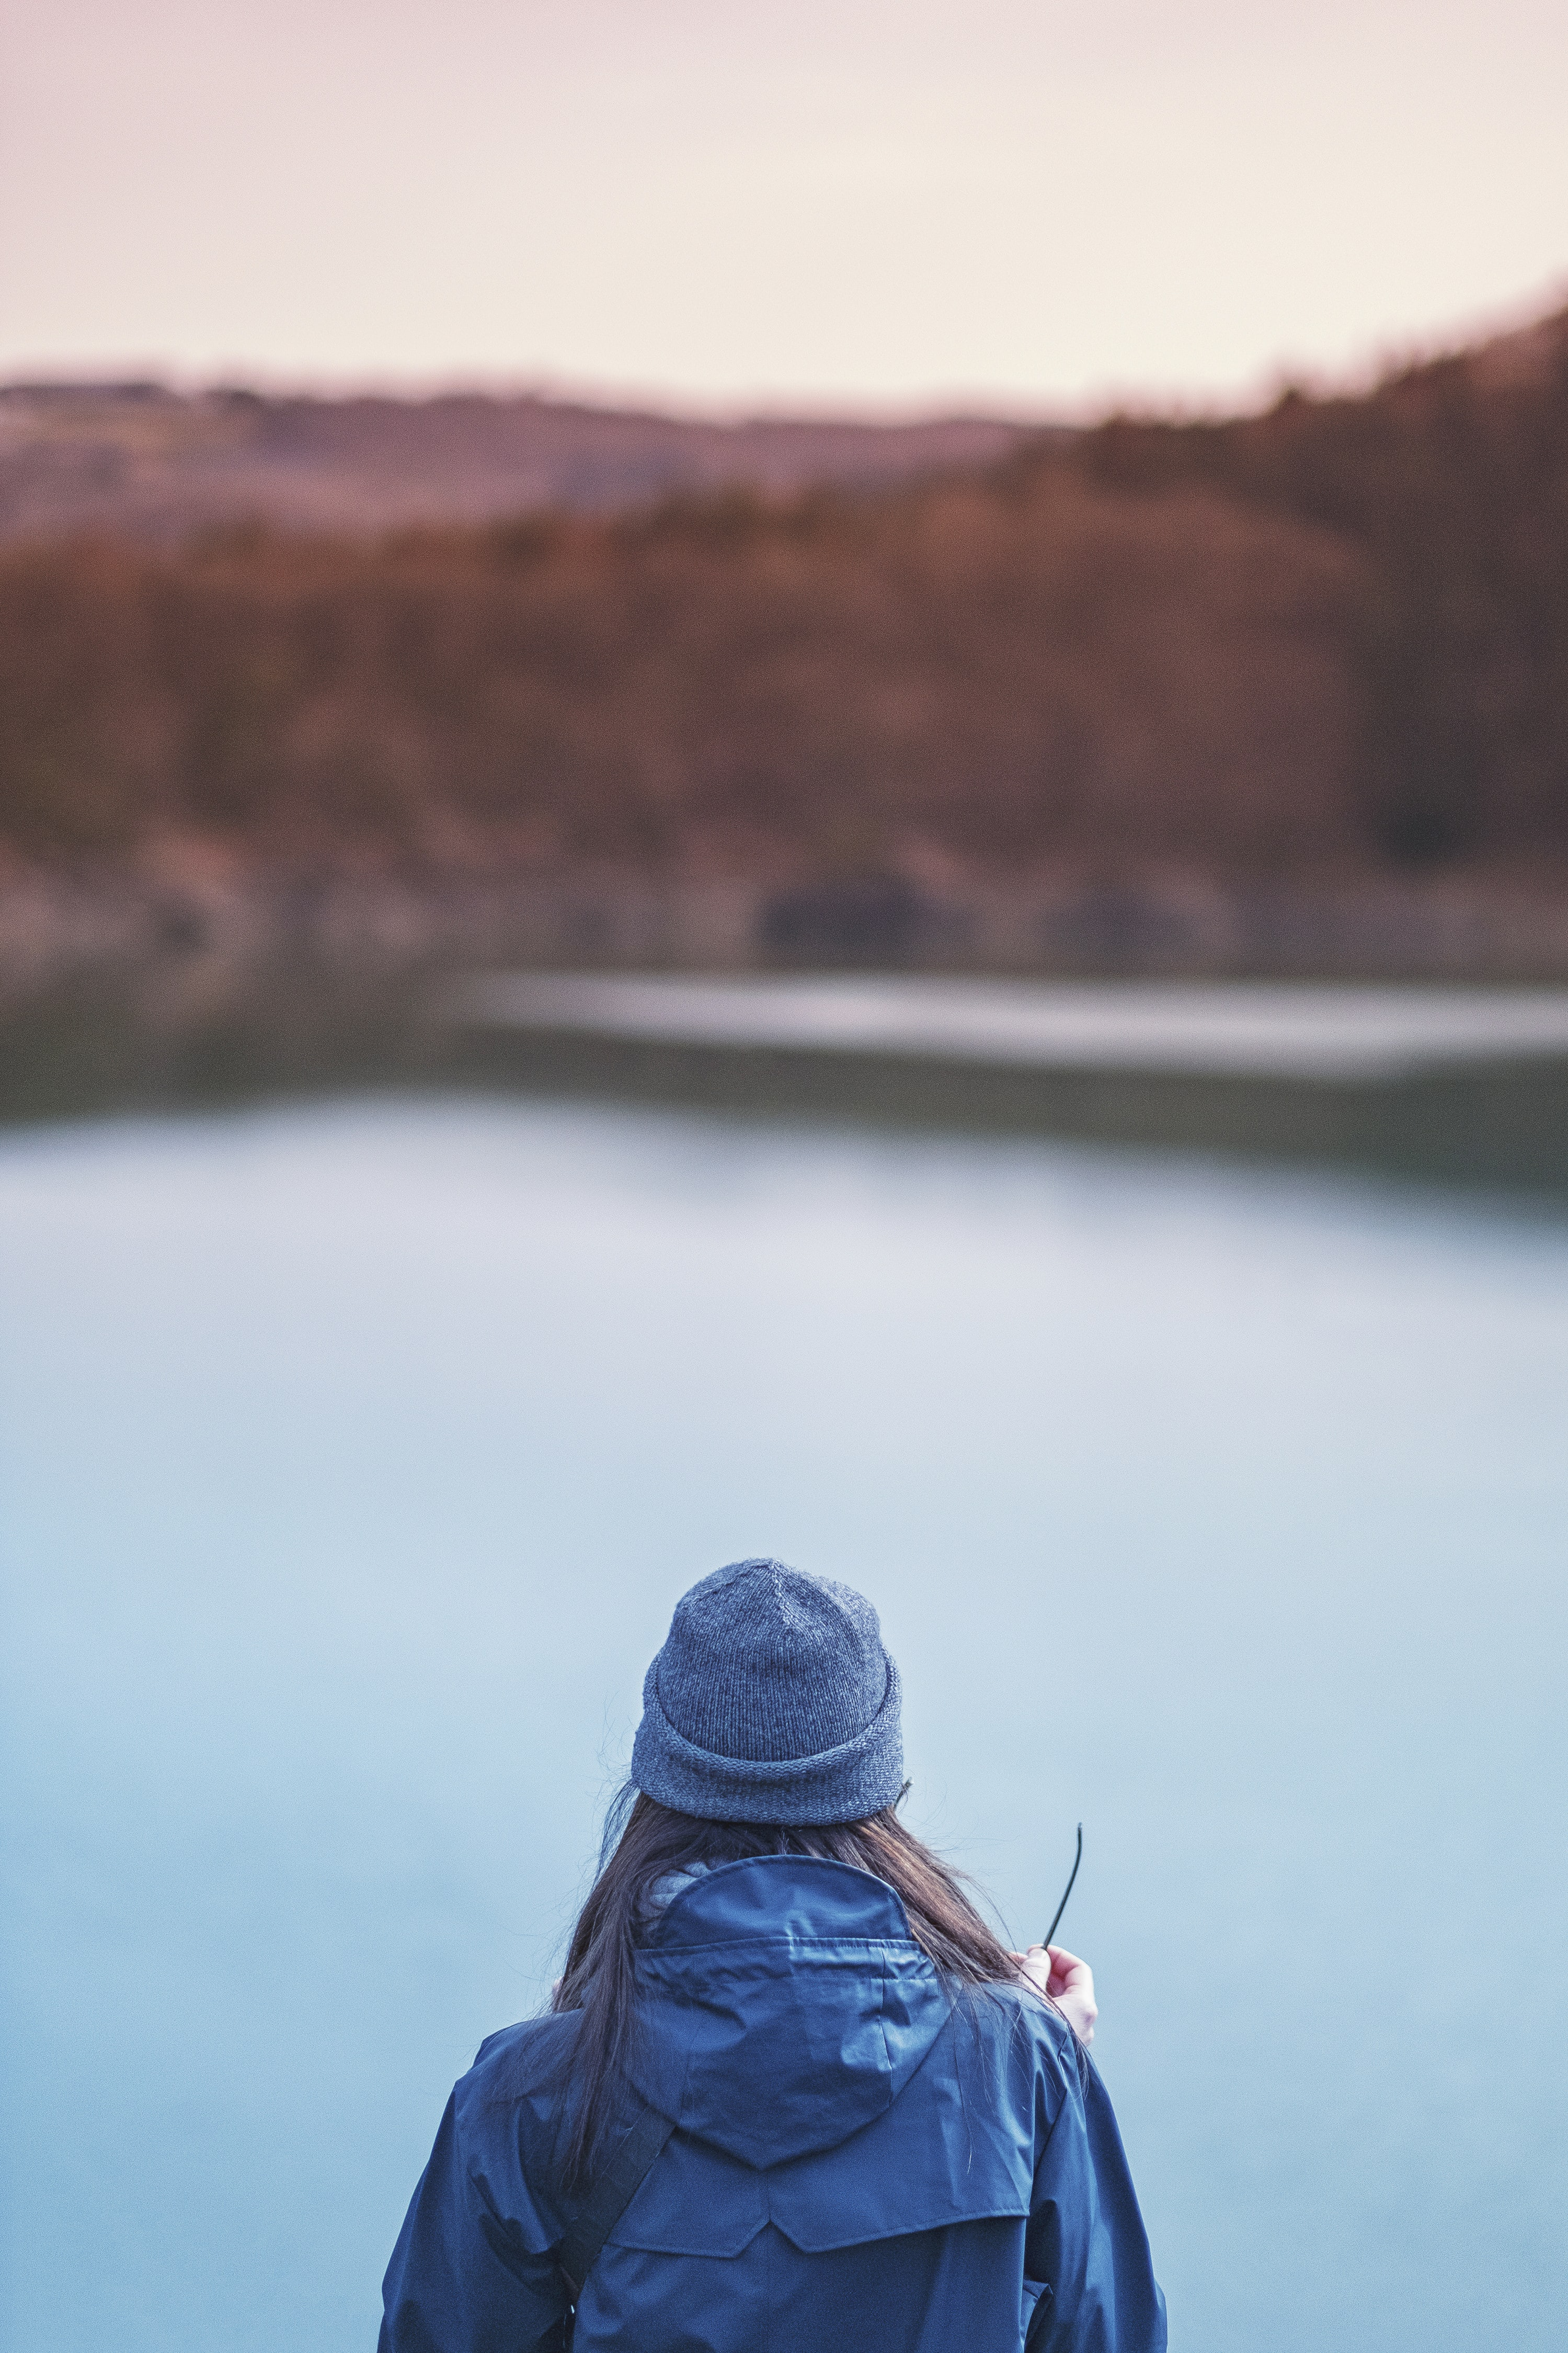 A woman staring out into a lake while wearing a blue jacket and beanie cap